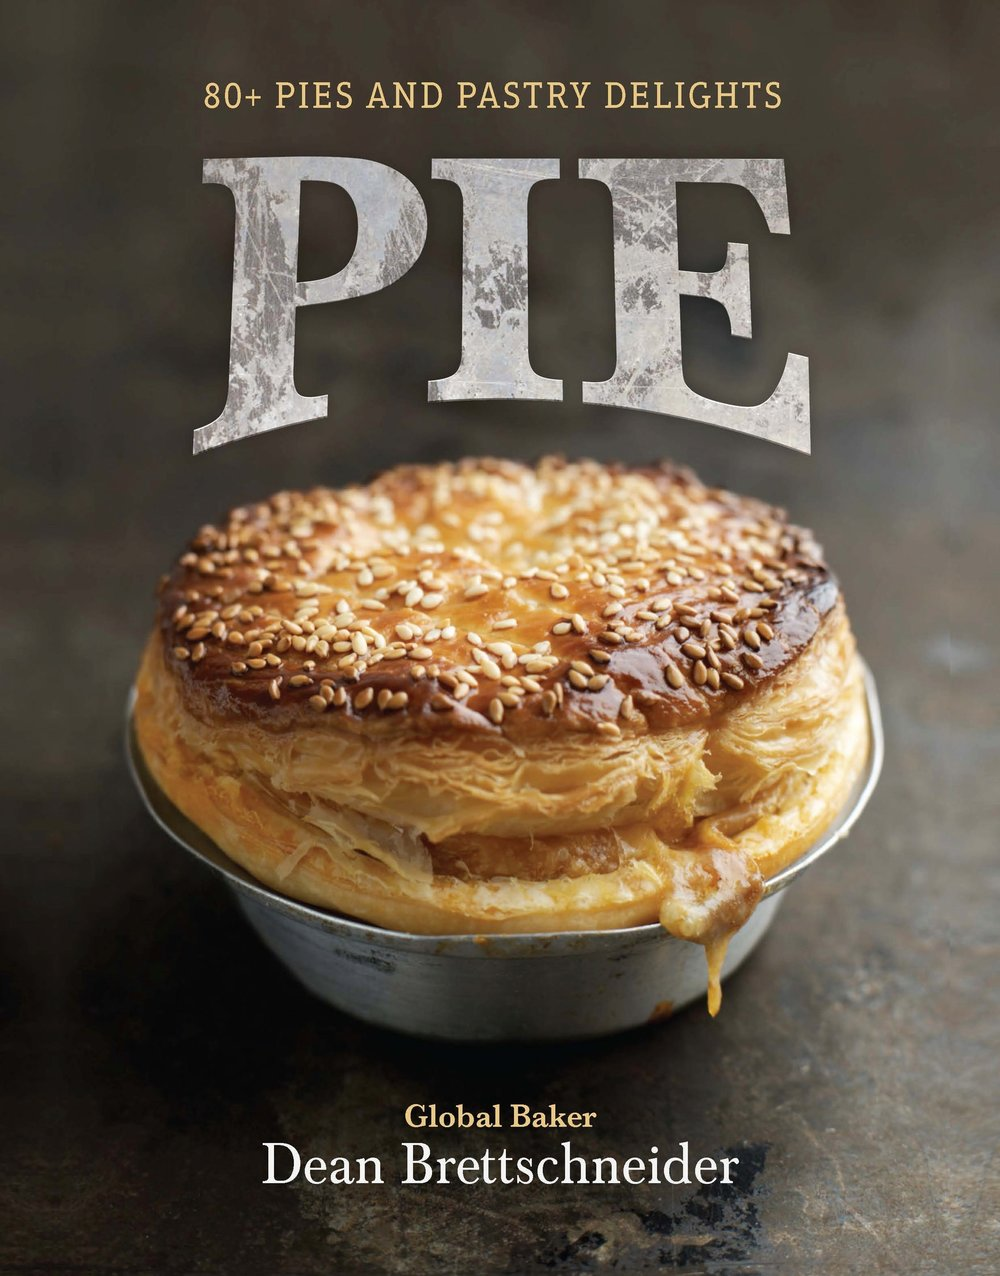 DEAN PIE BOOK COVER.jpg